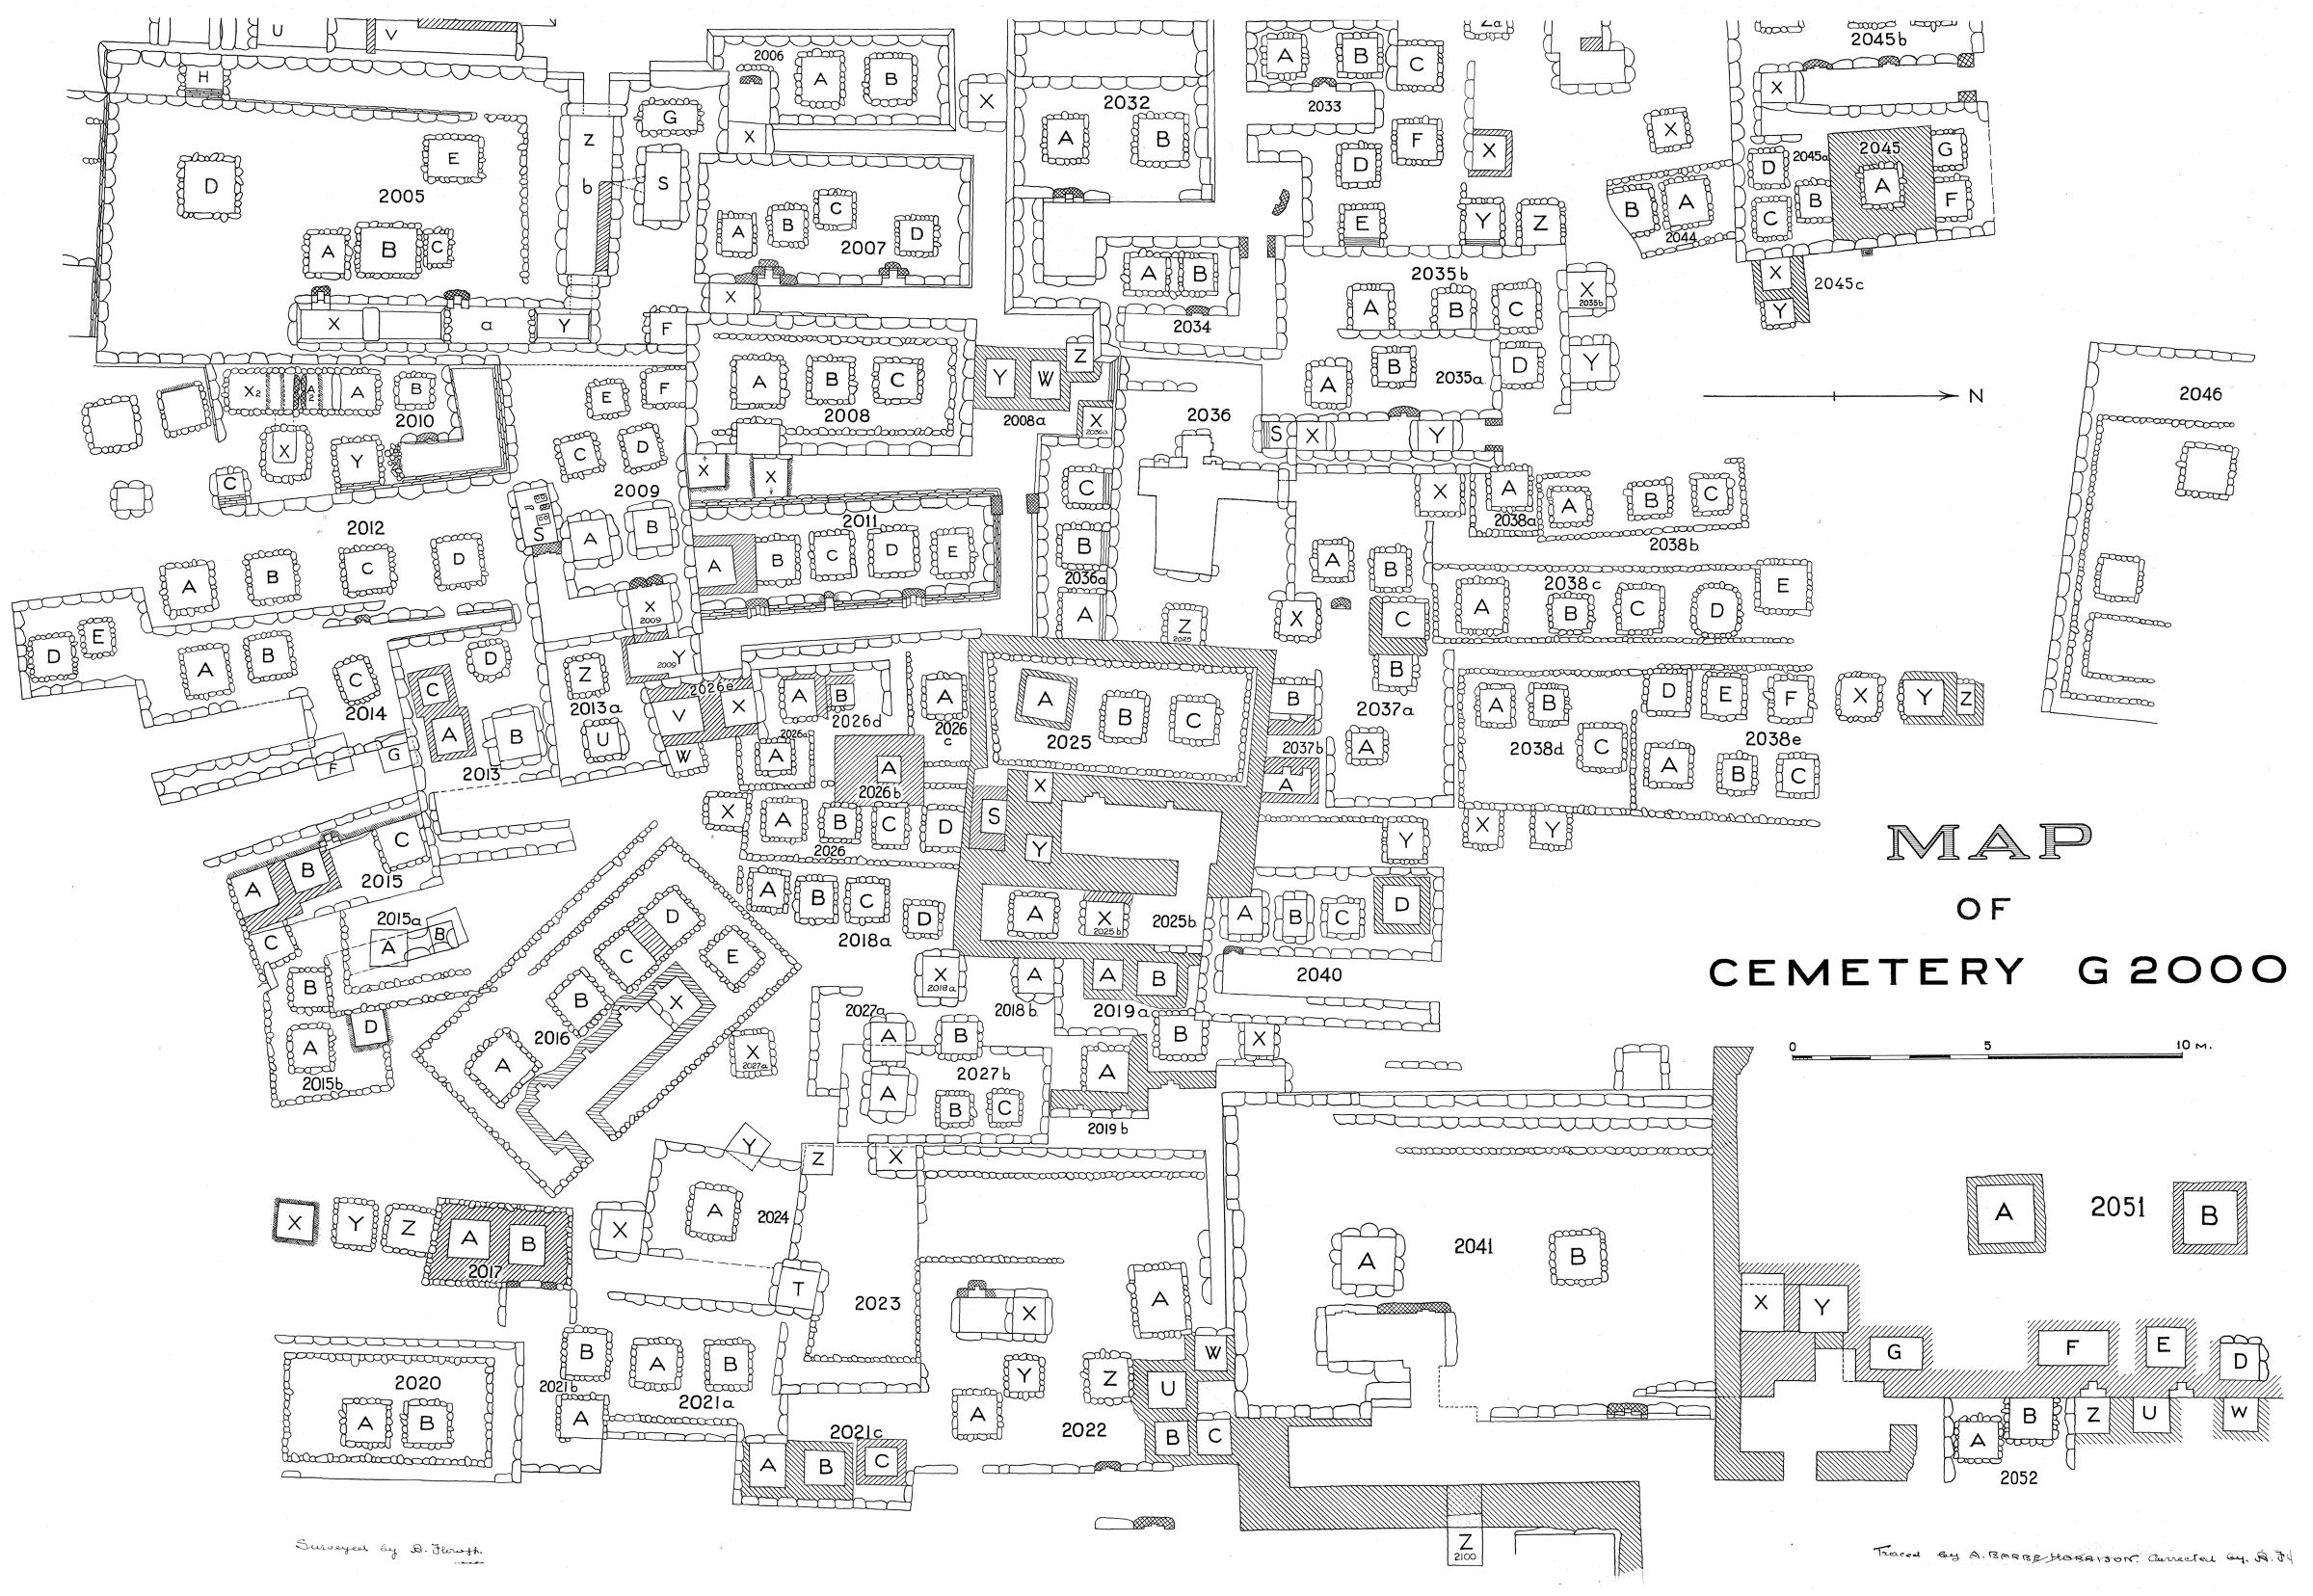 Maps and plans: Plan of cemetery G 2000